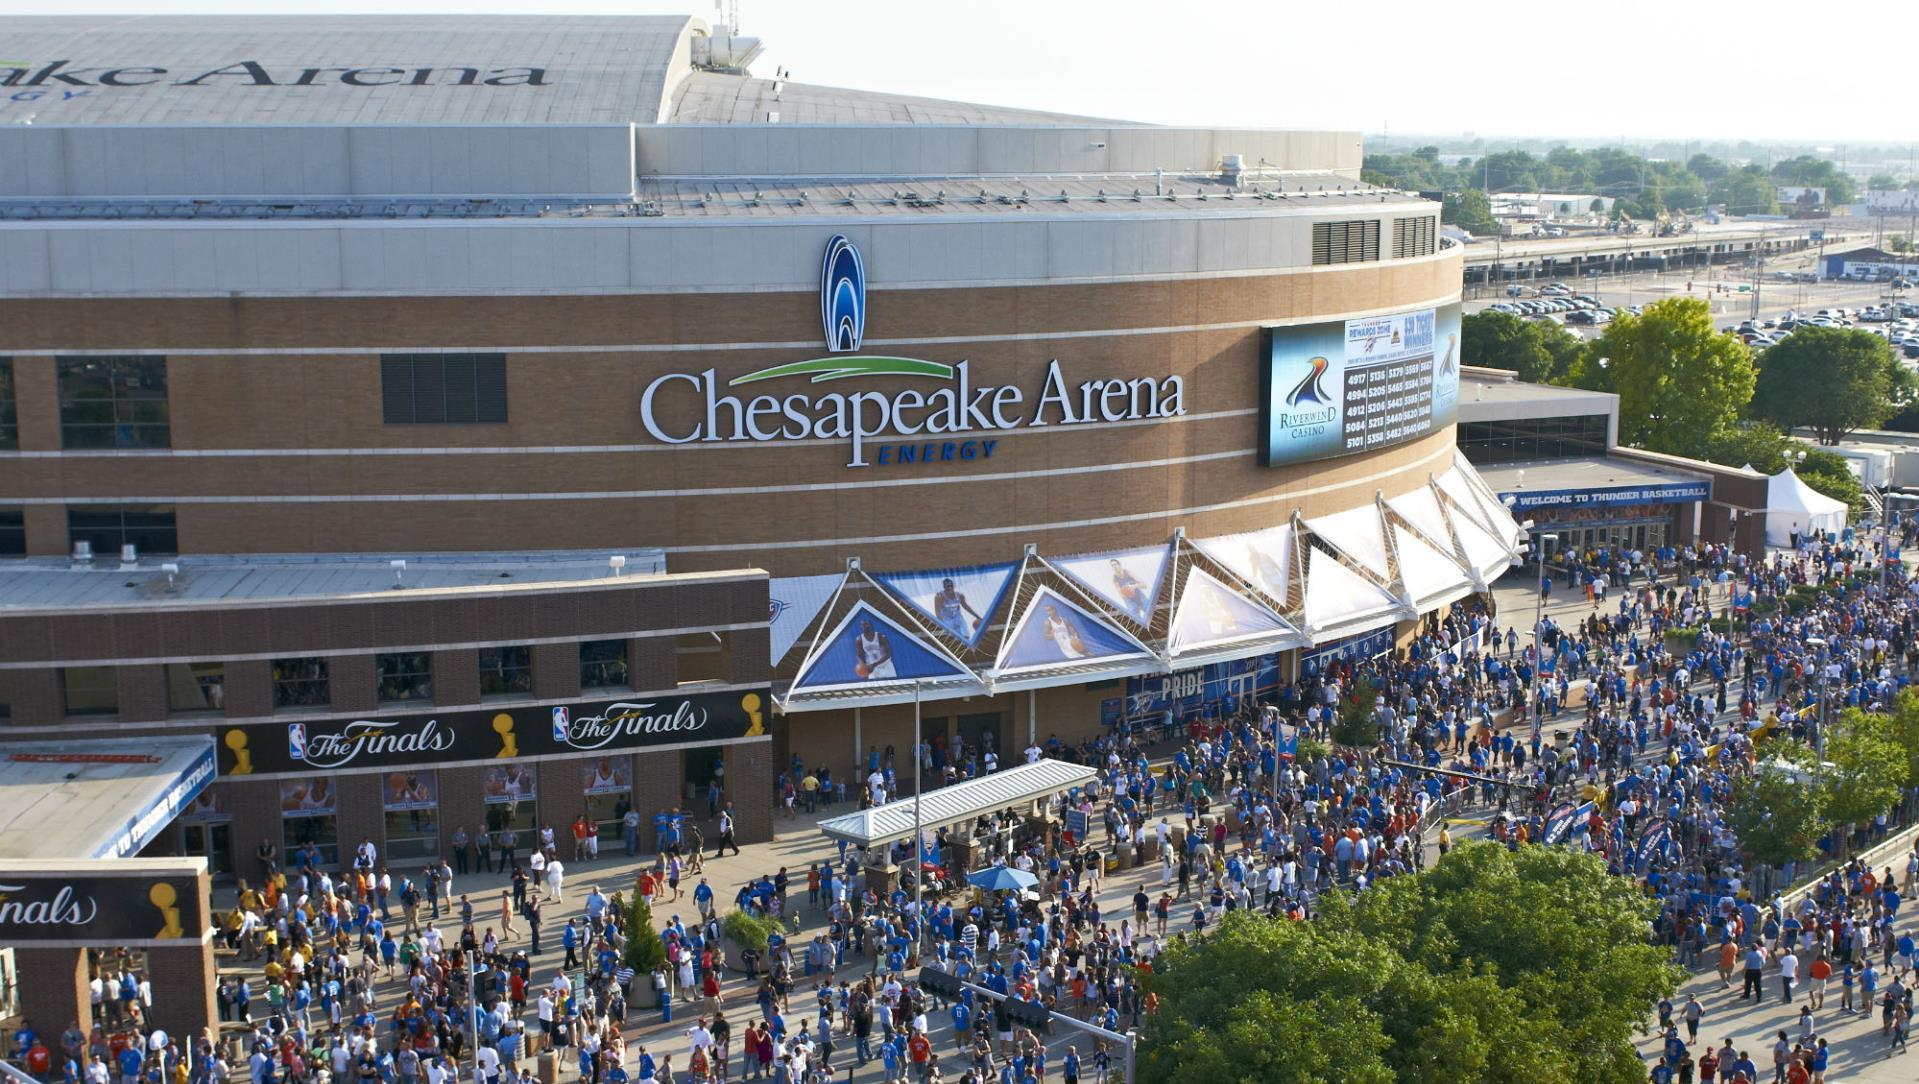 La Chesapeake Energy Arena, salle d'Oklahoma City Thunder NBA